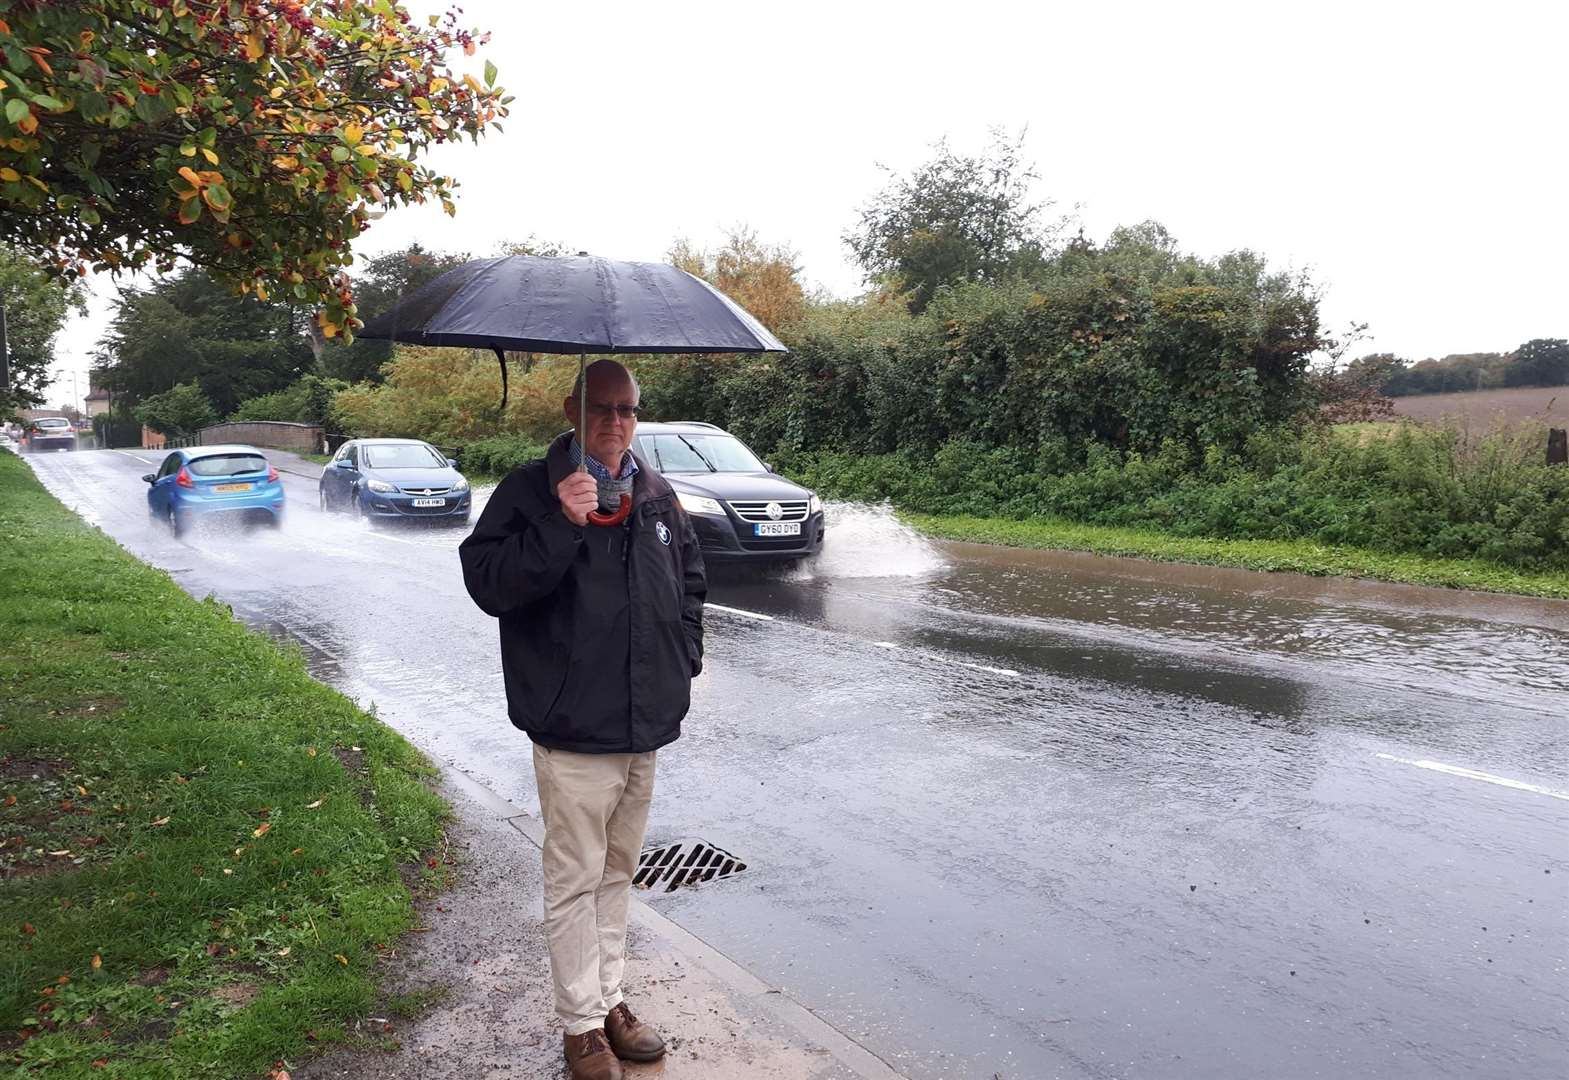 Flooding issue in Long Melford is 'accident waiting to happen', villagers warn